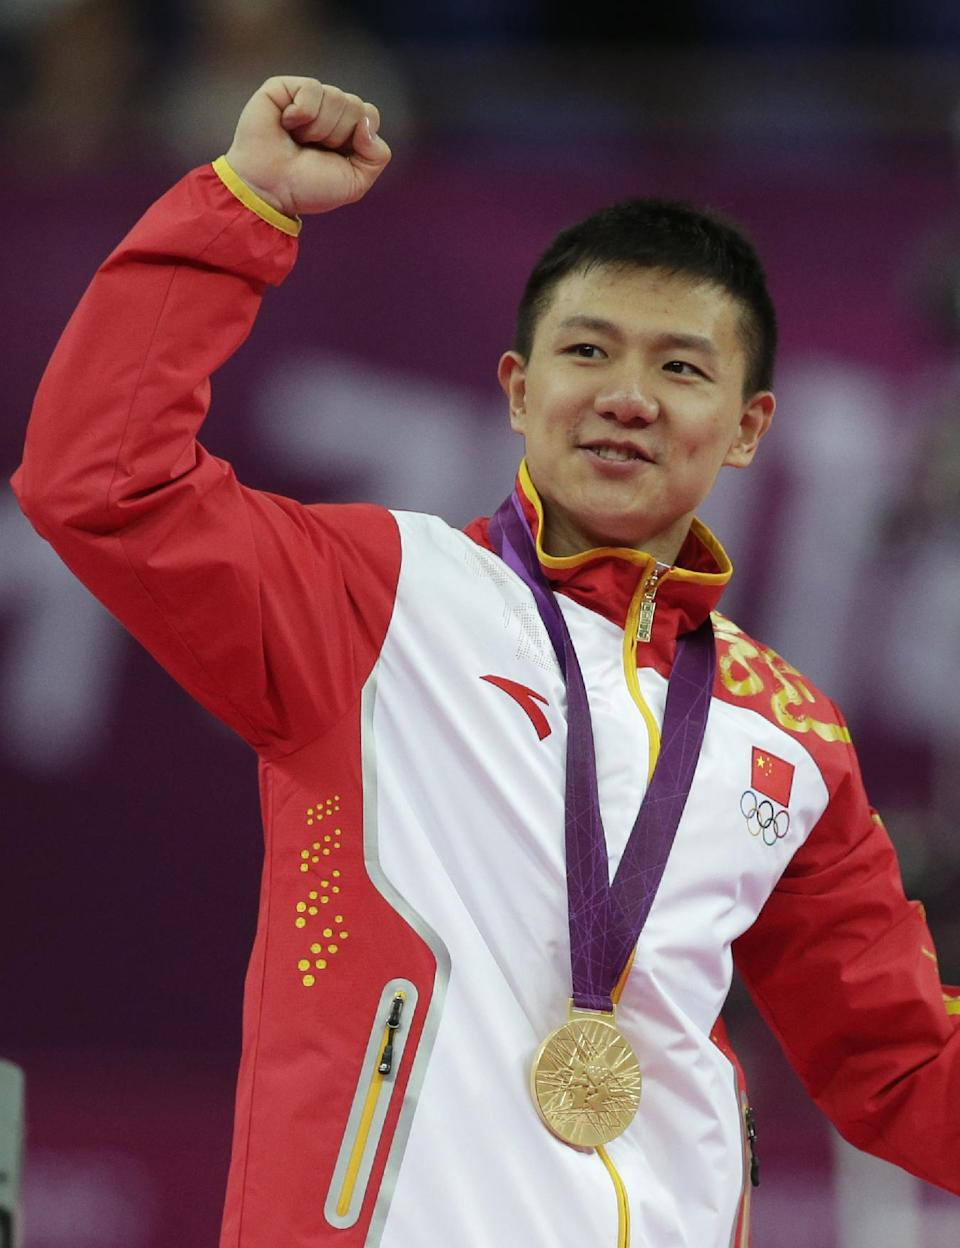 Chinese gymnast Chen Yibing celebrates his team winning the gold medal at the Artistic Gymnastic men's team final at the 2012 Summer Olympics, Monday, July 30, 2012, in London. (AP Photo/Julie Jacobson)